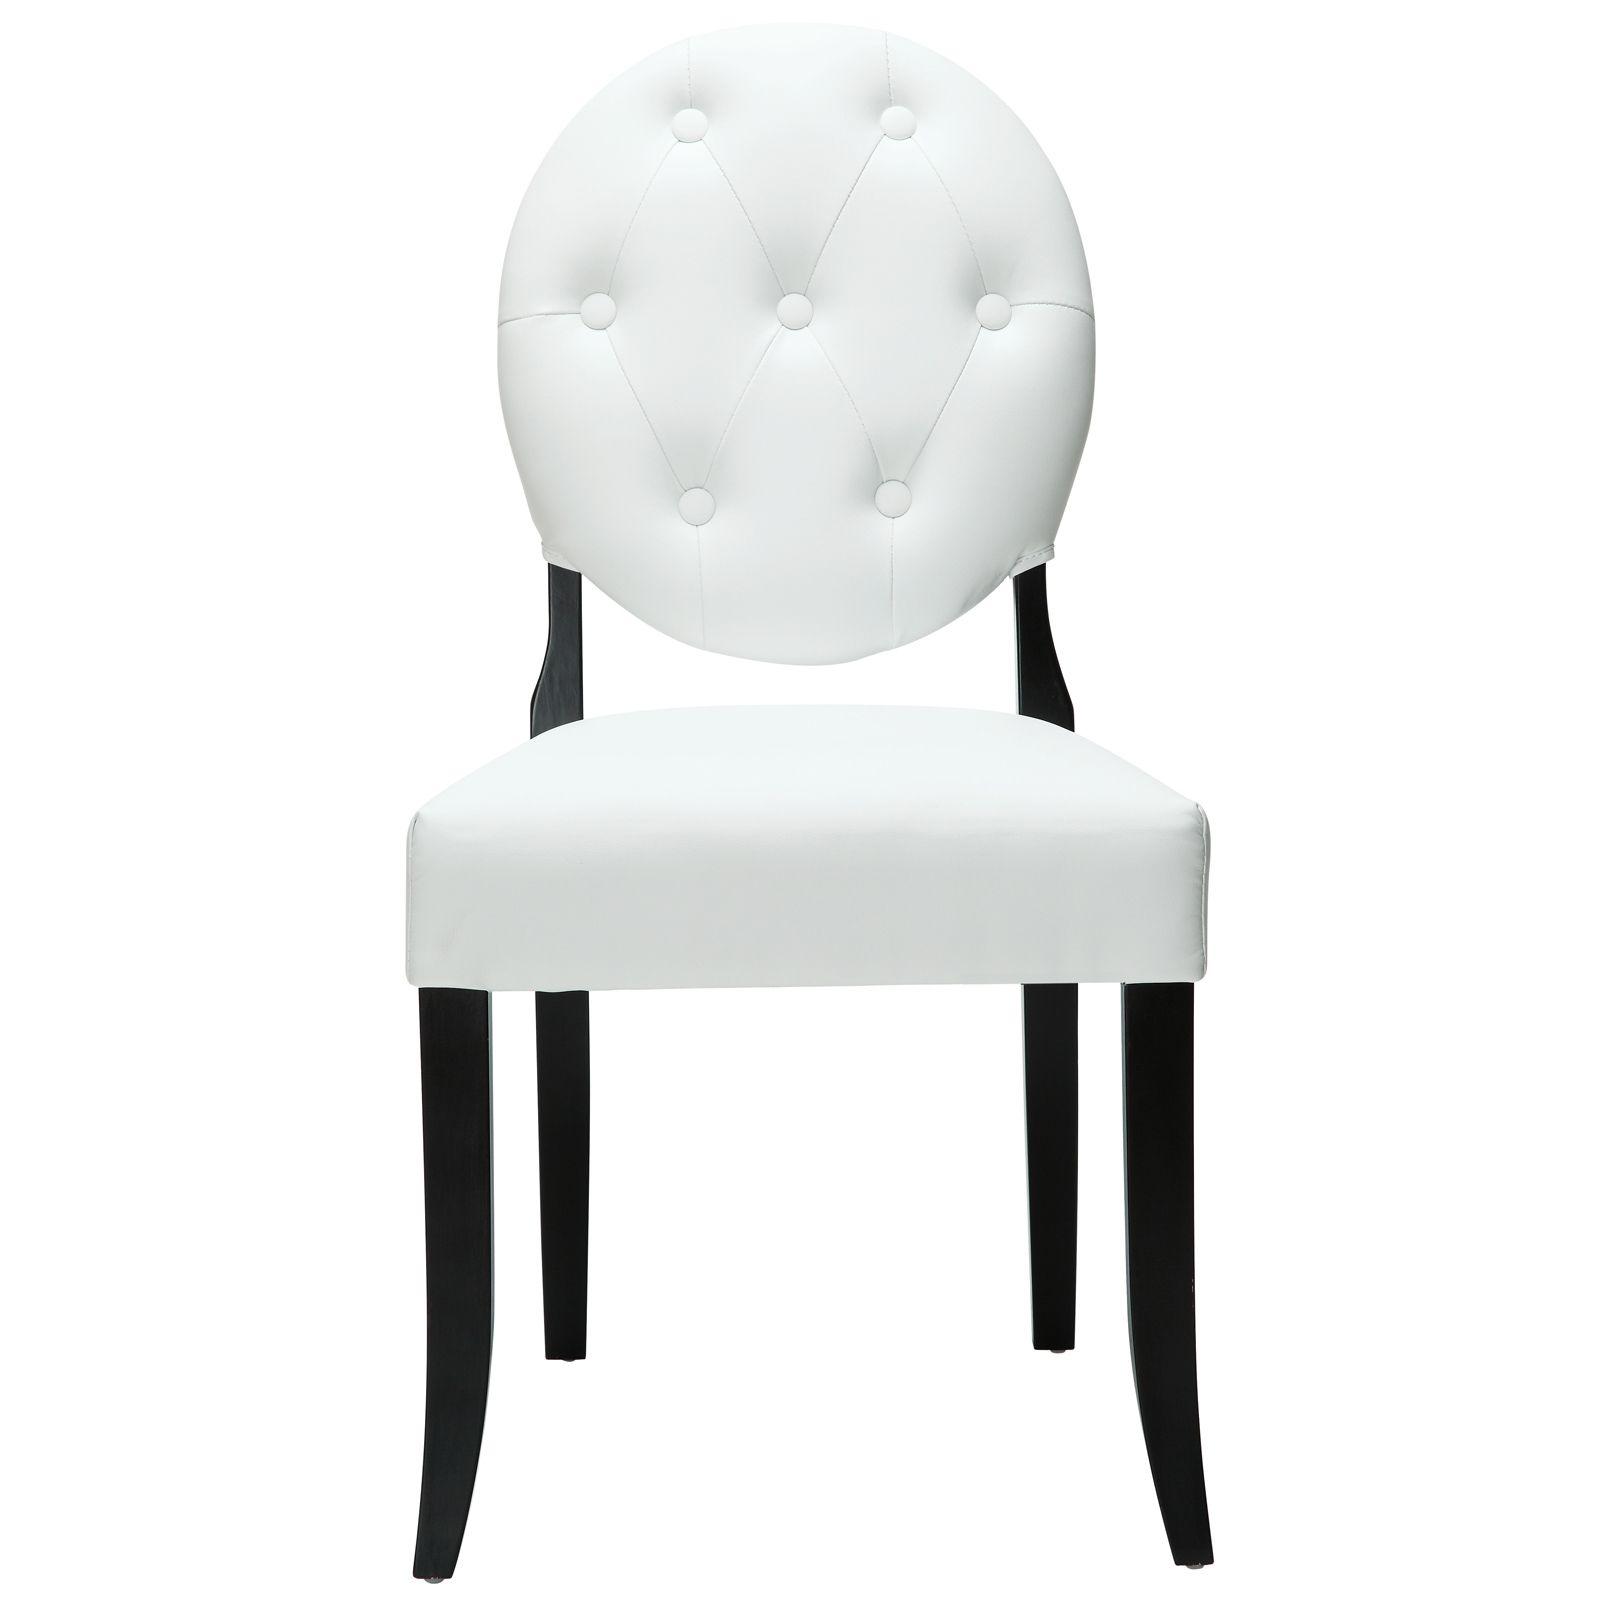 Modway Buttoned White Vinyl Black Legs Ghost Chair (Black